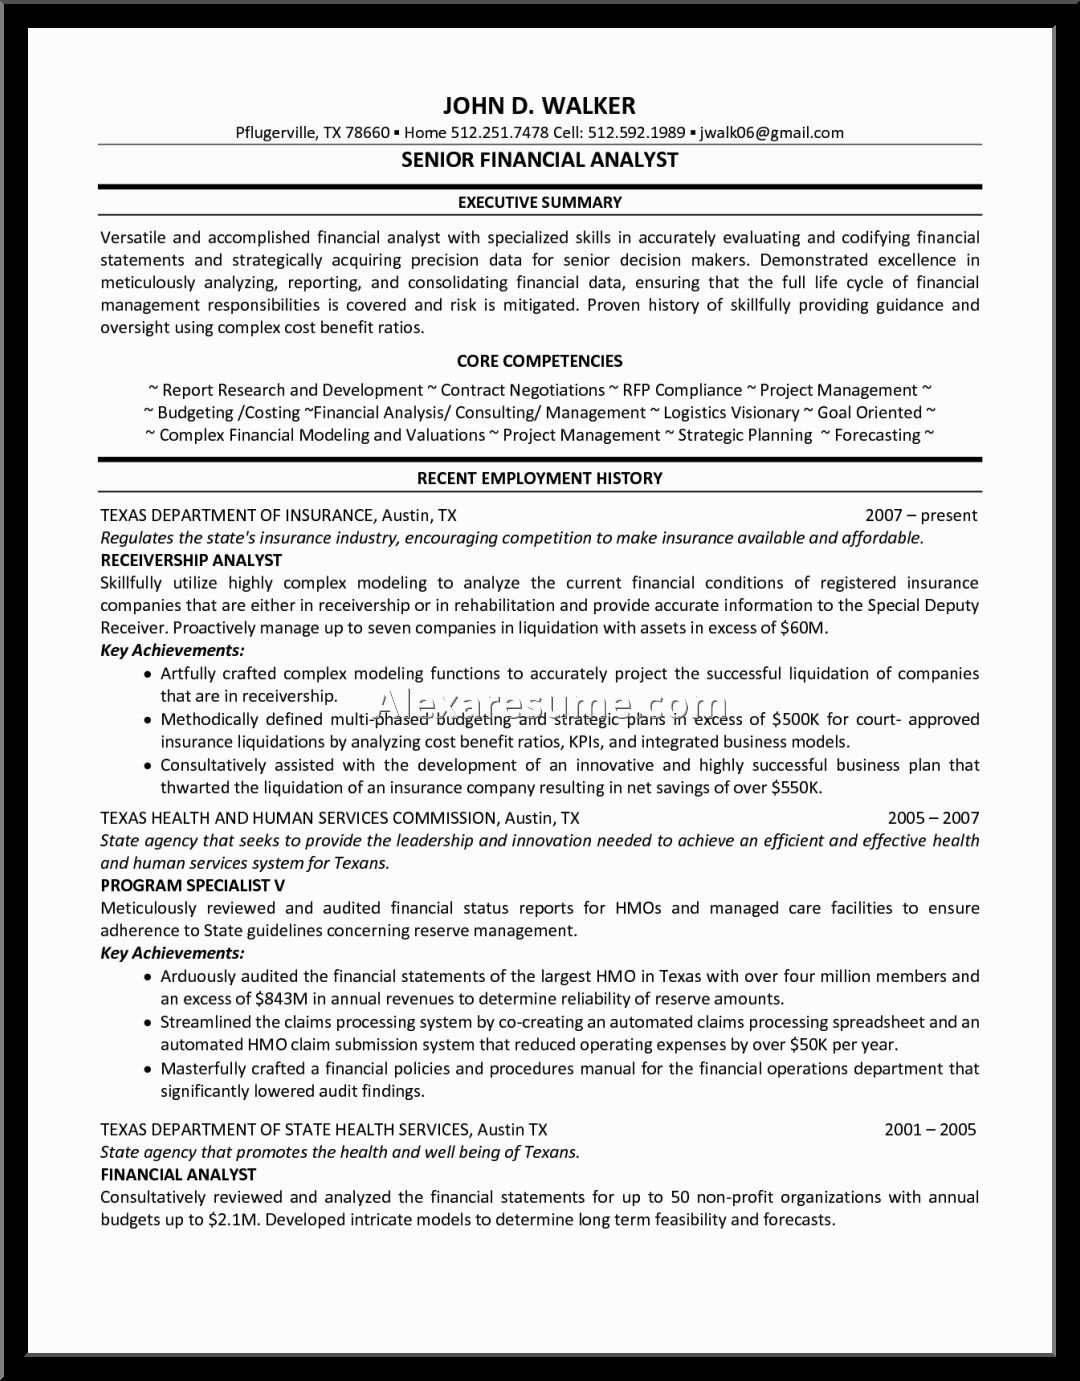 Analyst Resume Financial Sample Formatting Ideas Mistakes Faq